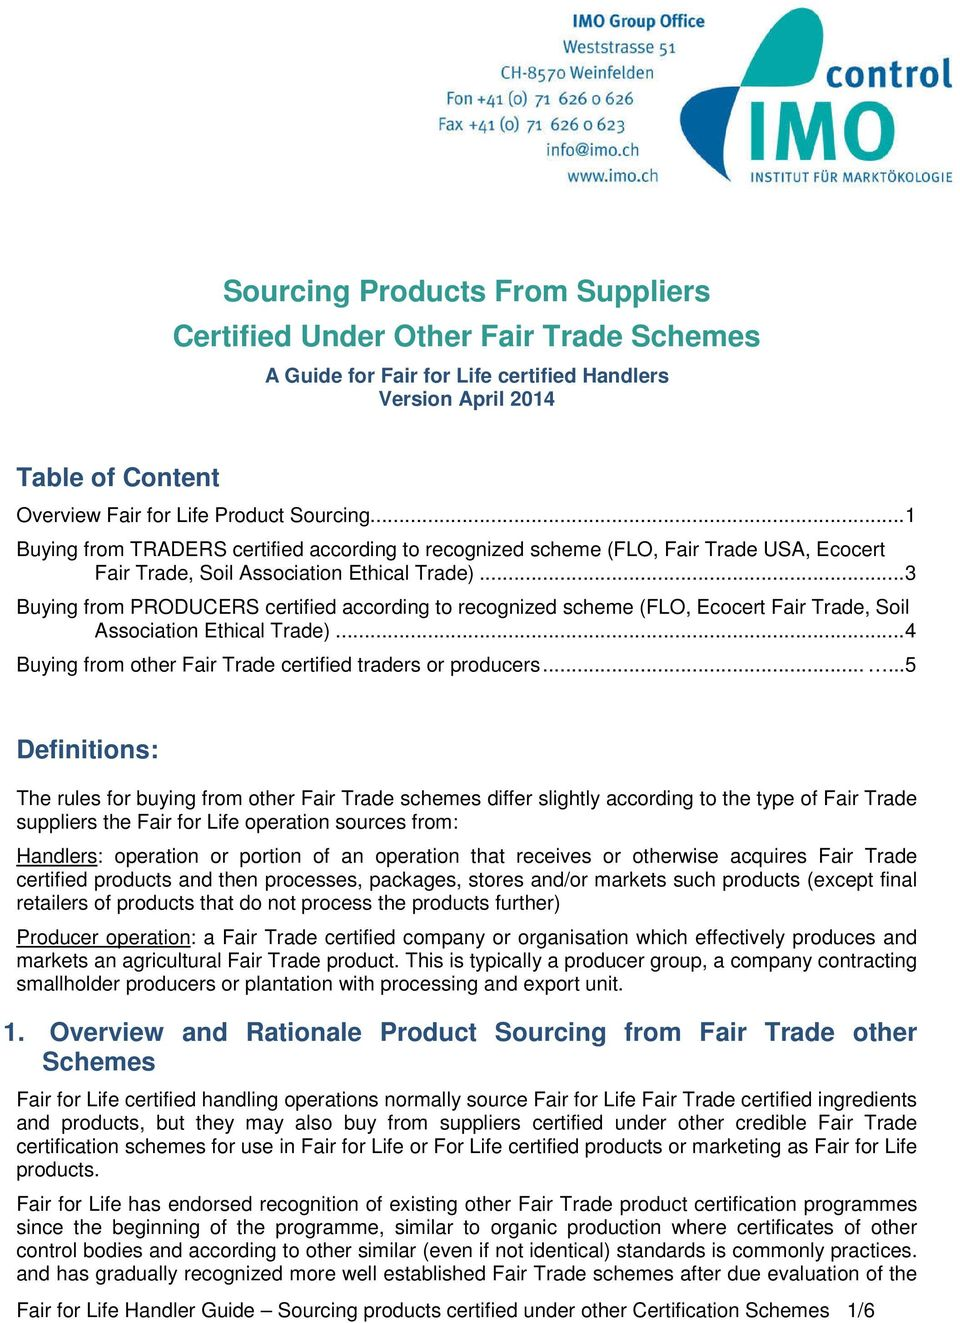 .. 3 Buying from PRODUCERS certified according to recognized scheme (FLO, Ecocert Fair Trade, Soil Association Ethical Trade)... 4 Buying from other Fair Trade certified traders or producers.